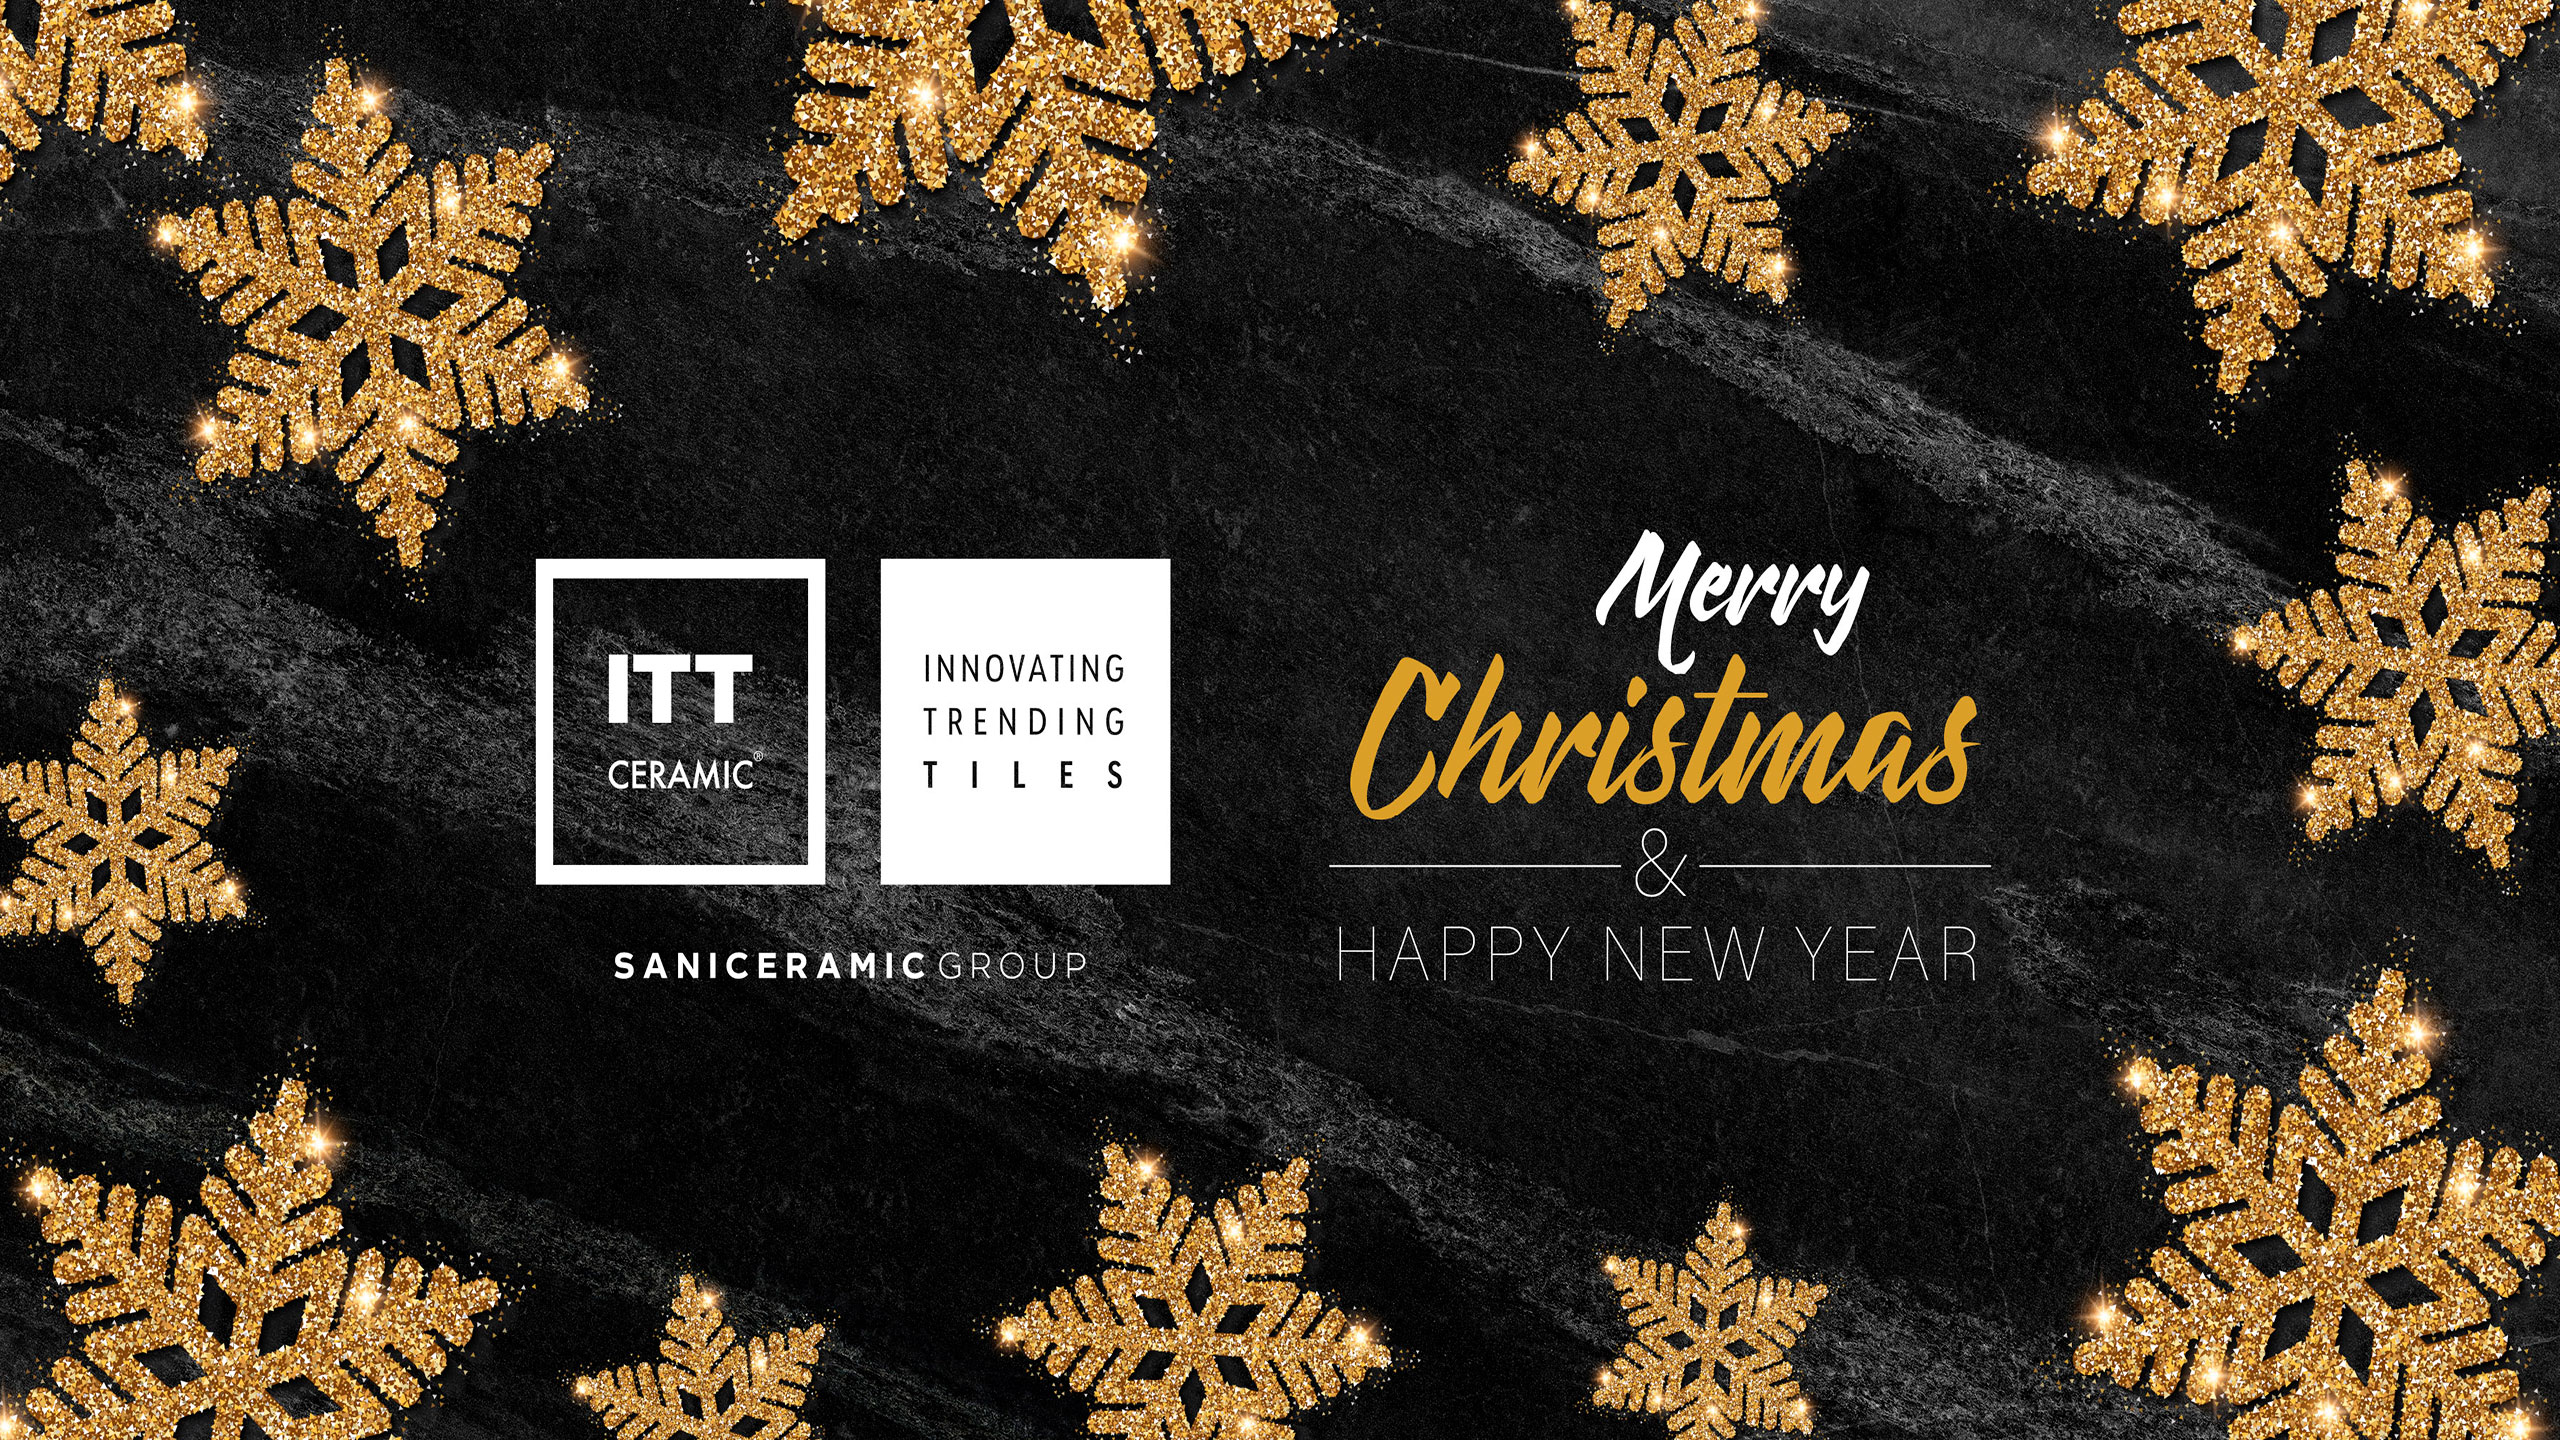 Christmas 2018 ITT Ceramic